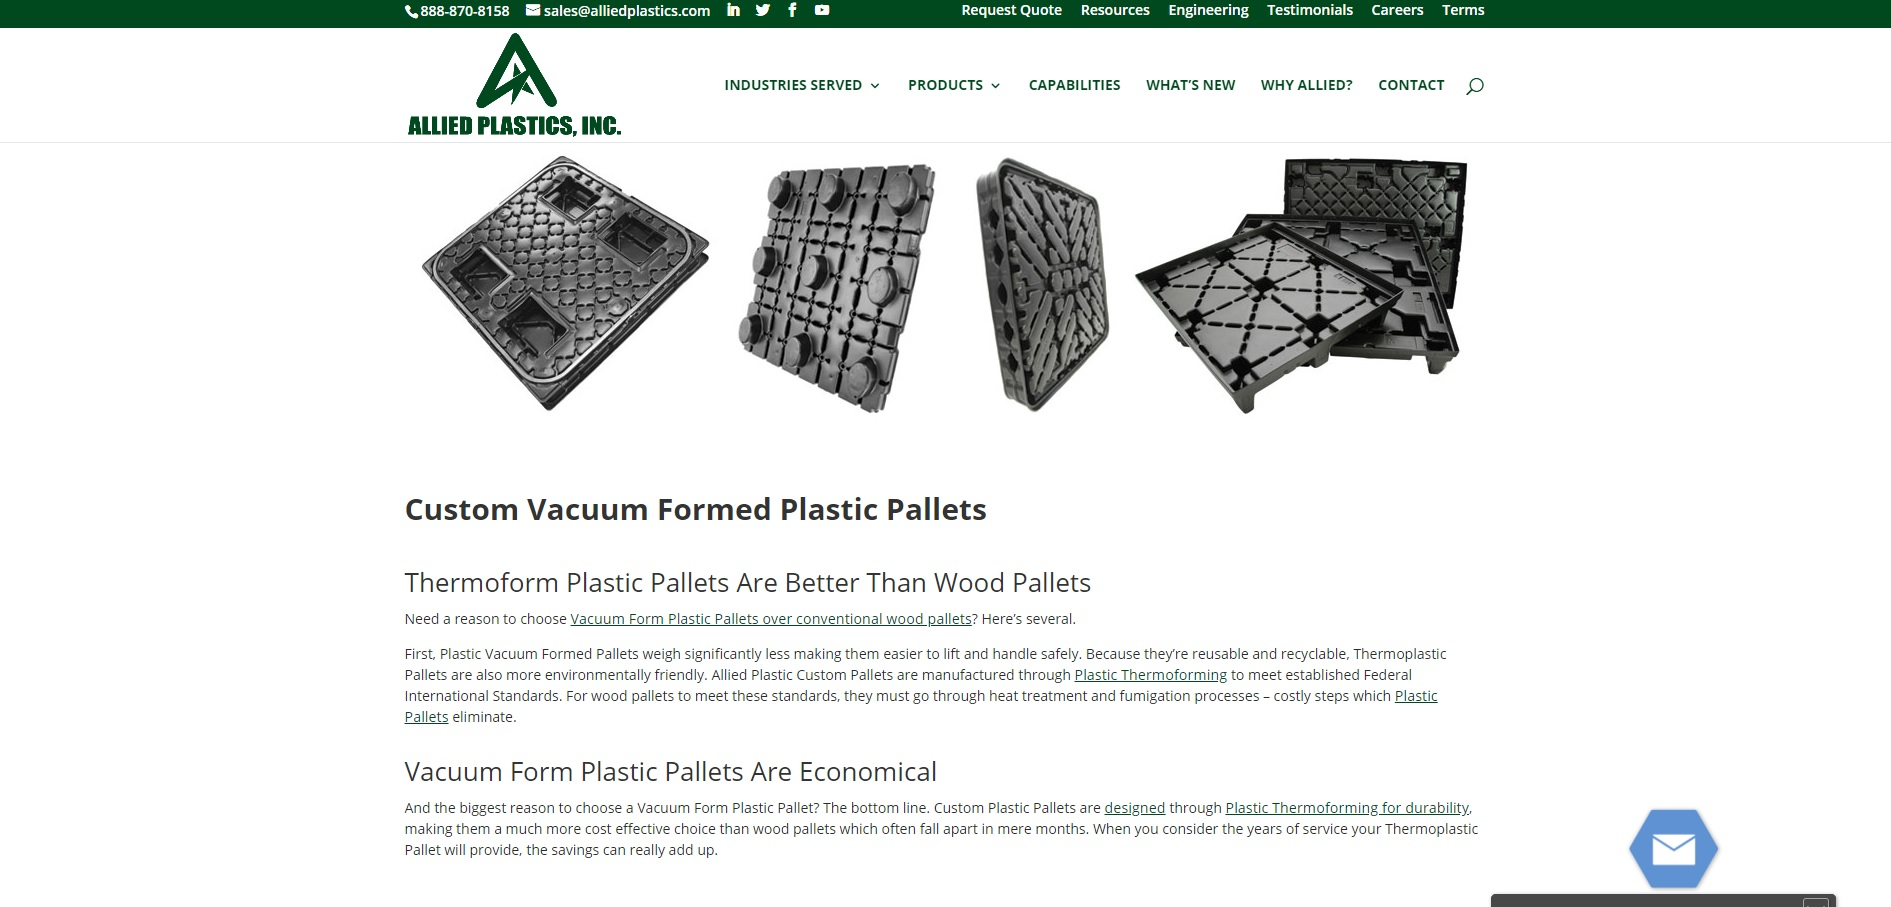 Allied Plastics, Inc.